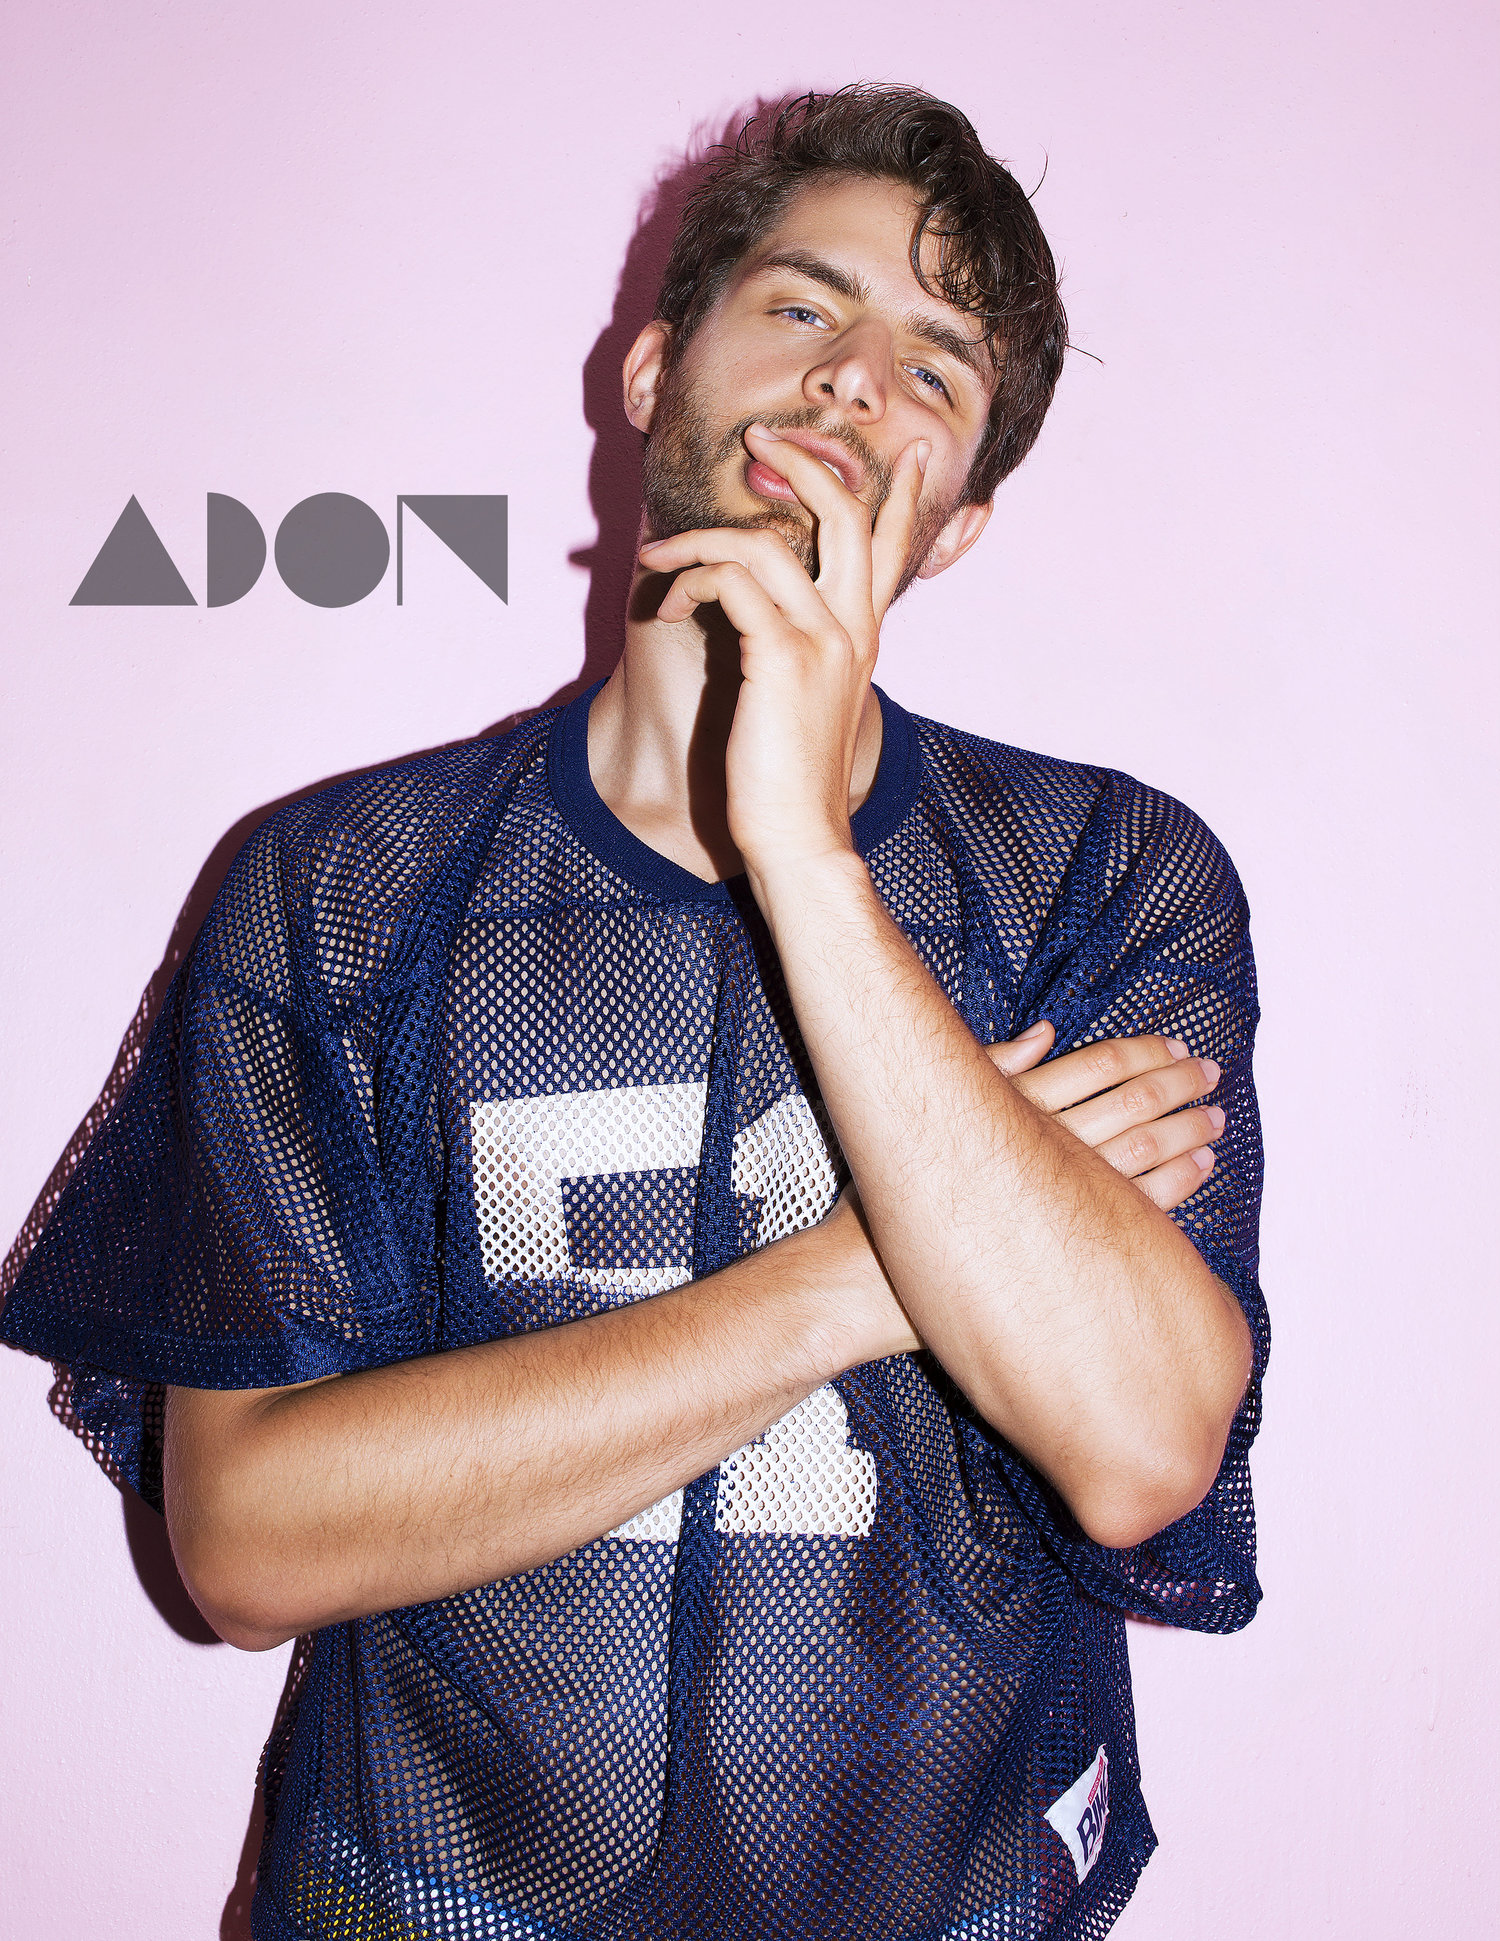 Adon Exclusive: Model David Richard By Alain Vasallo